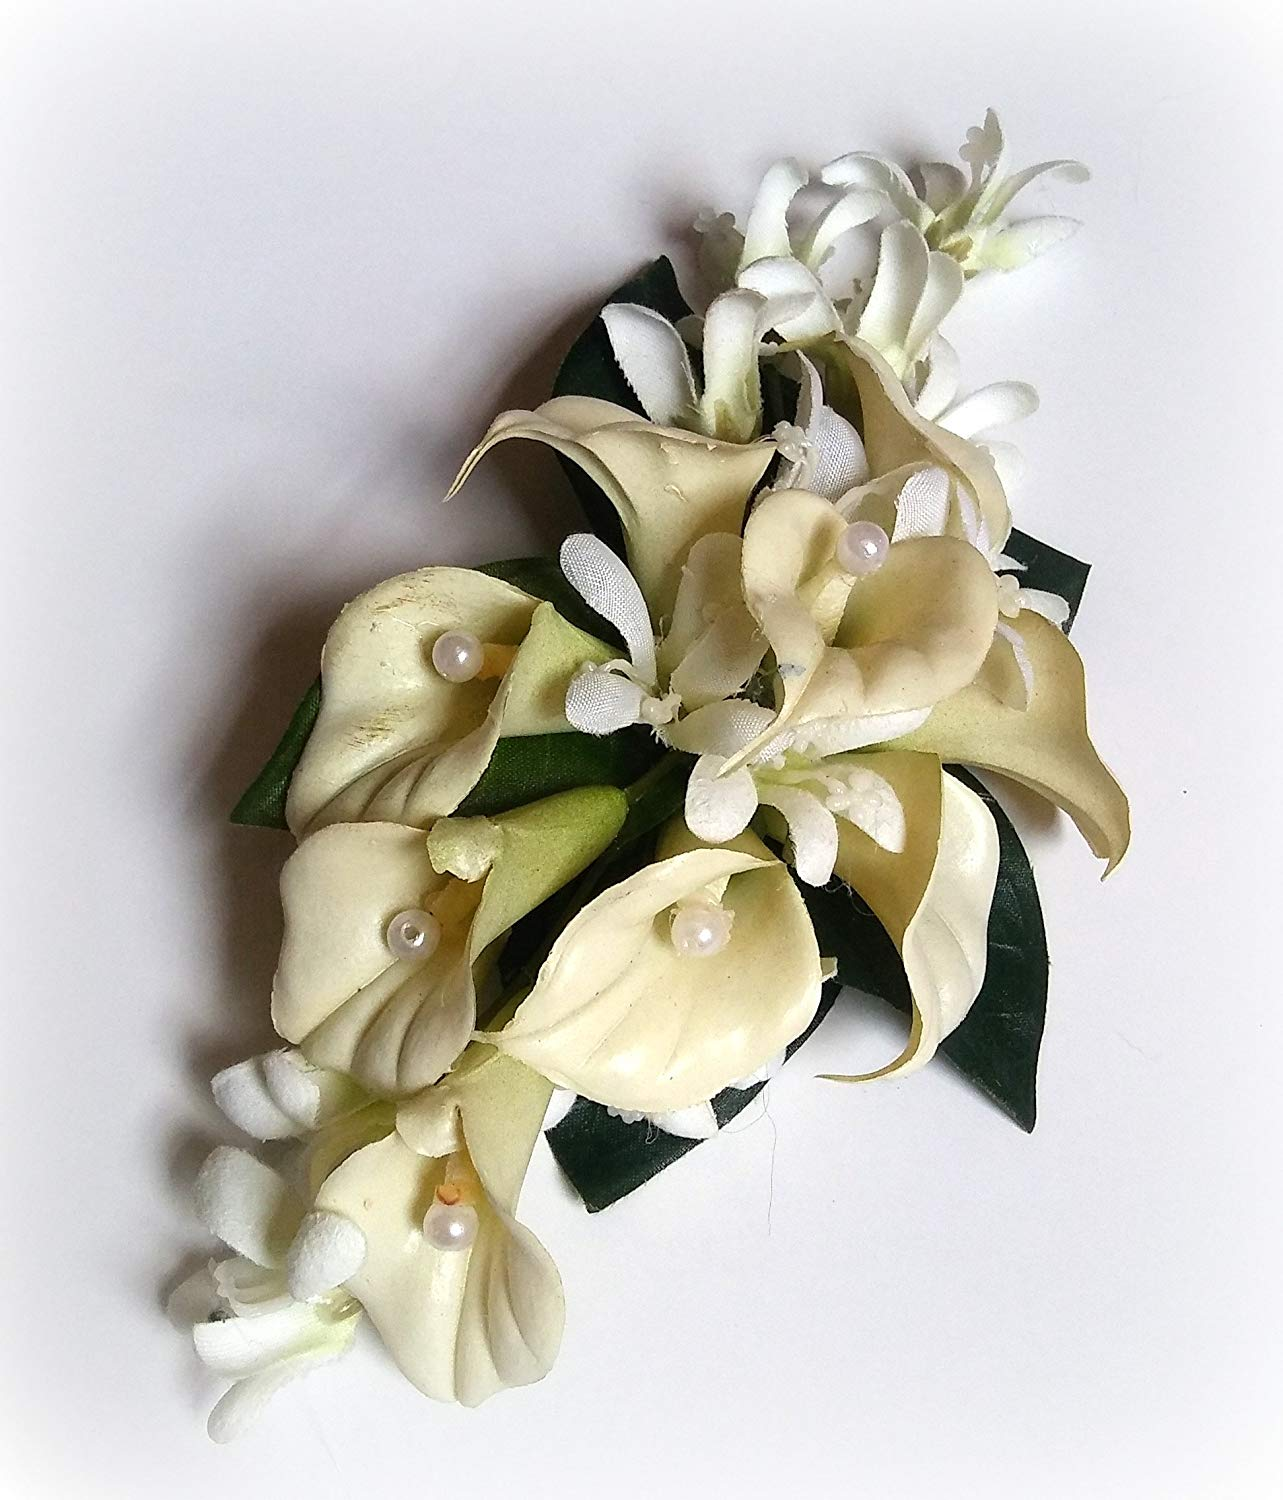 Cheap Flower White Lily Find Flower White Lily Deals On Line At